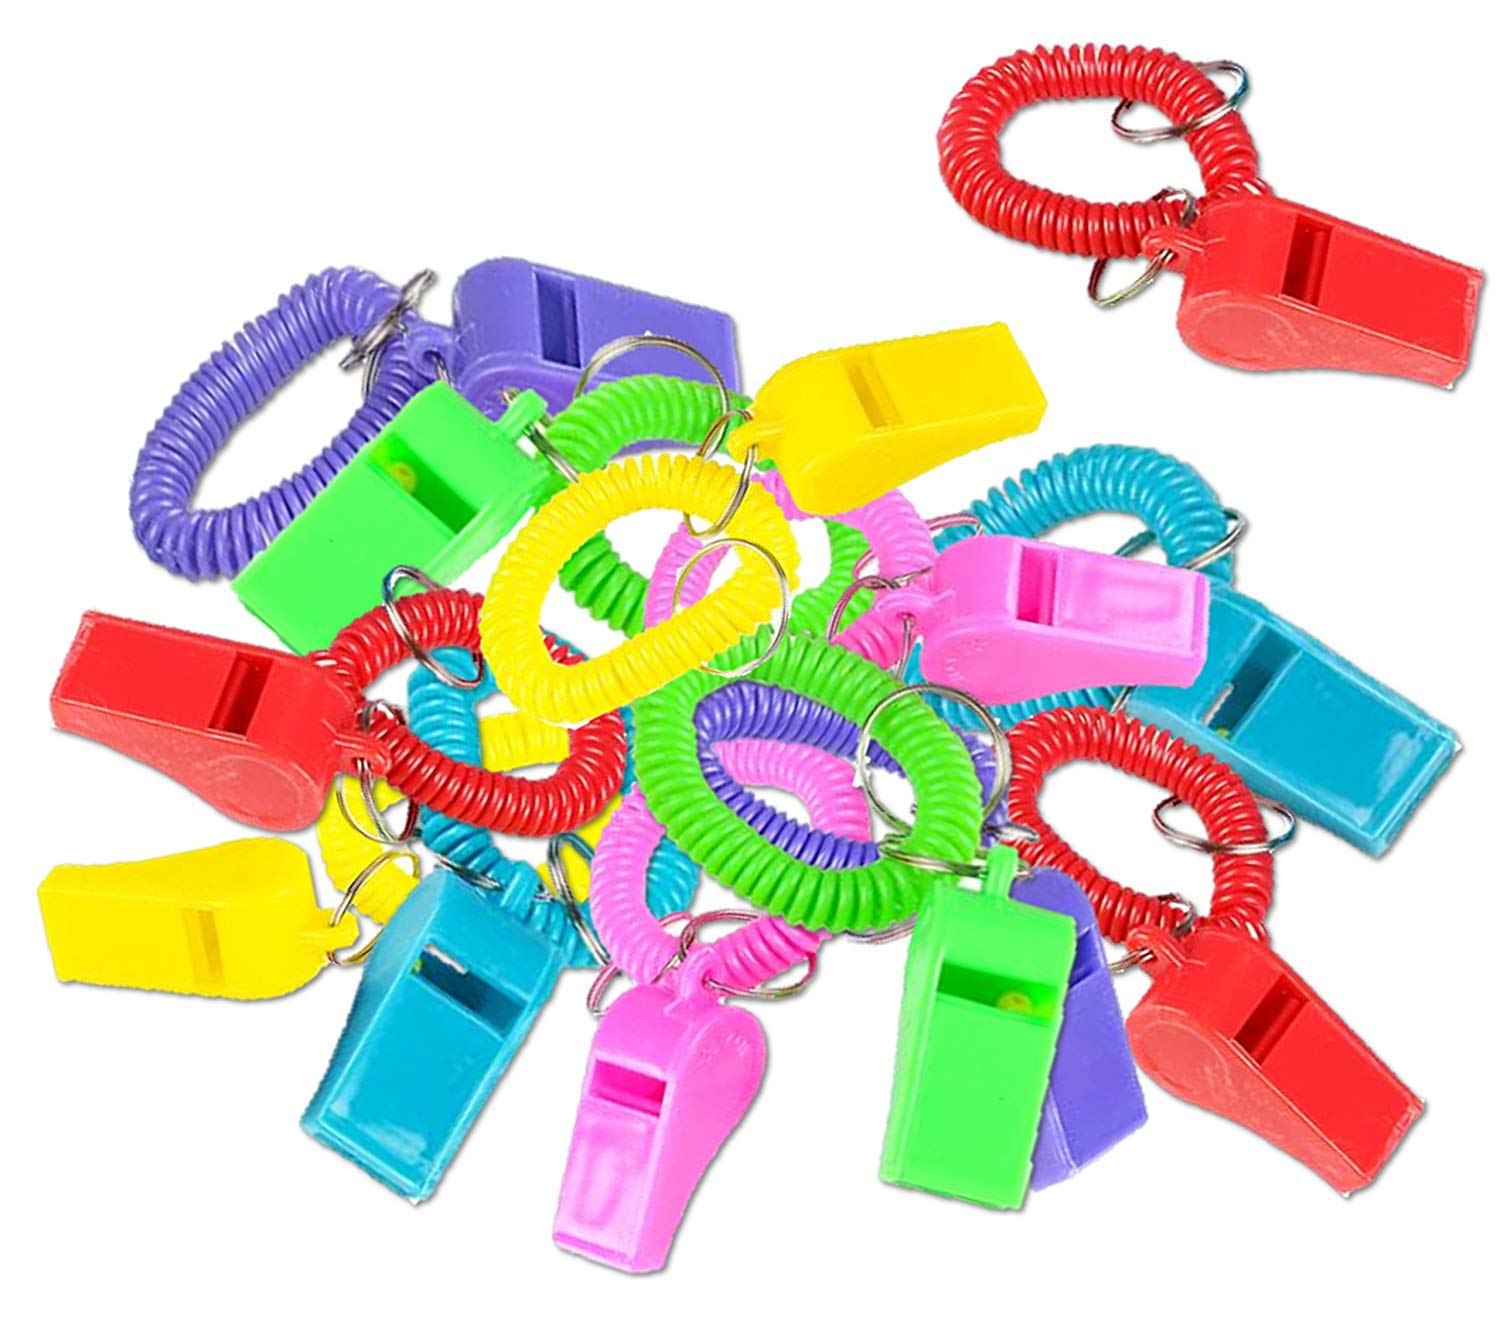 Metal Whistles Call a time-out for fun with these whistles Pack of 12 Stick them in goodie bags